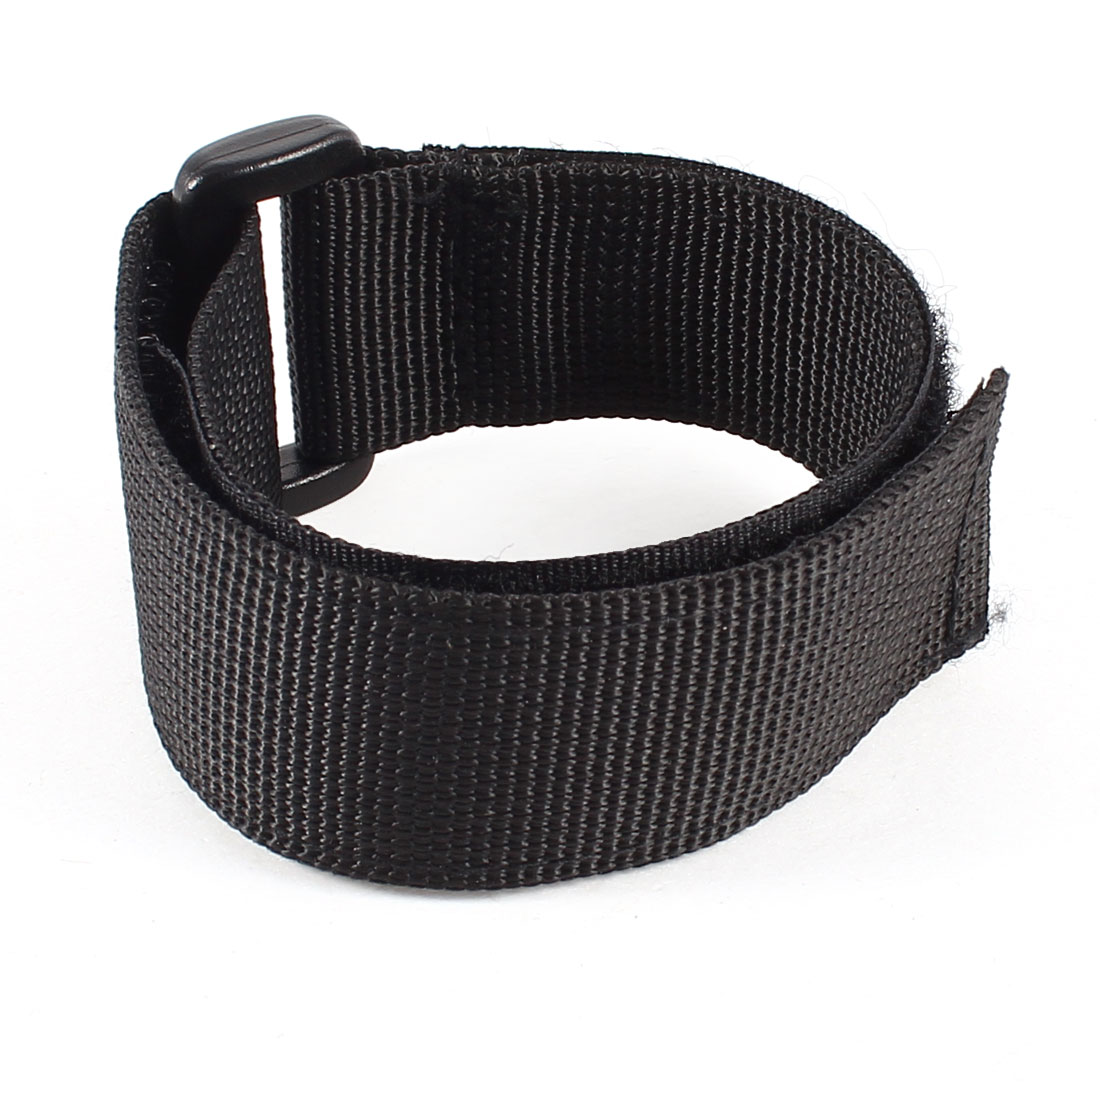 2.5cm Width Band Bike Handle Wrist Strap Black for GoPro Wifi Remote